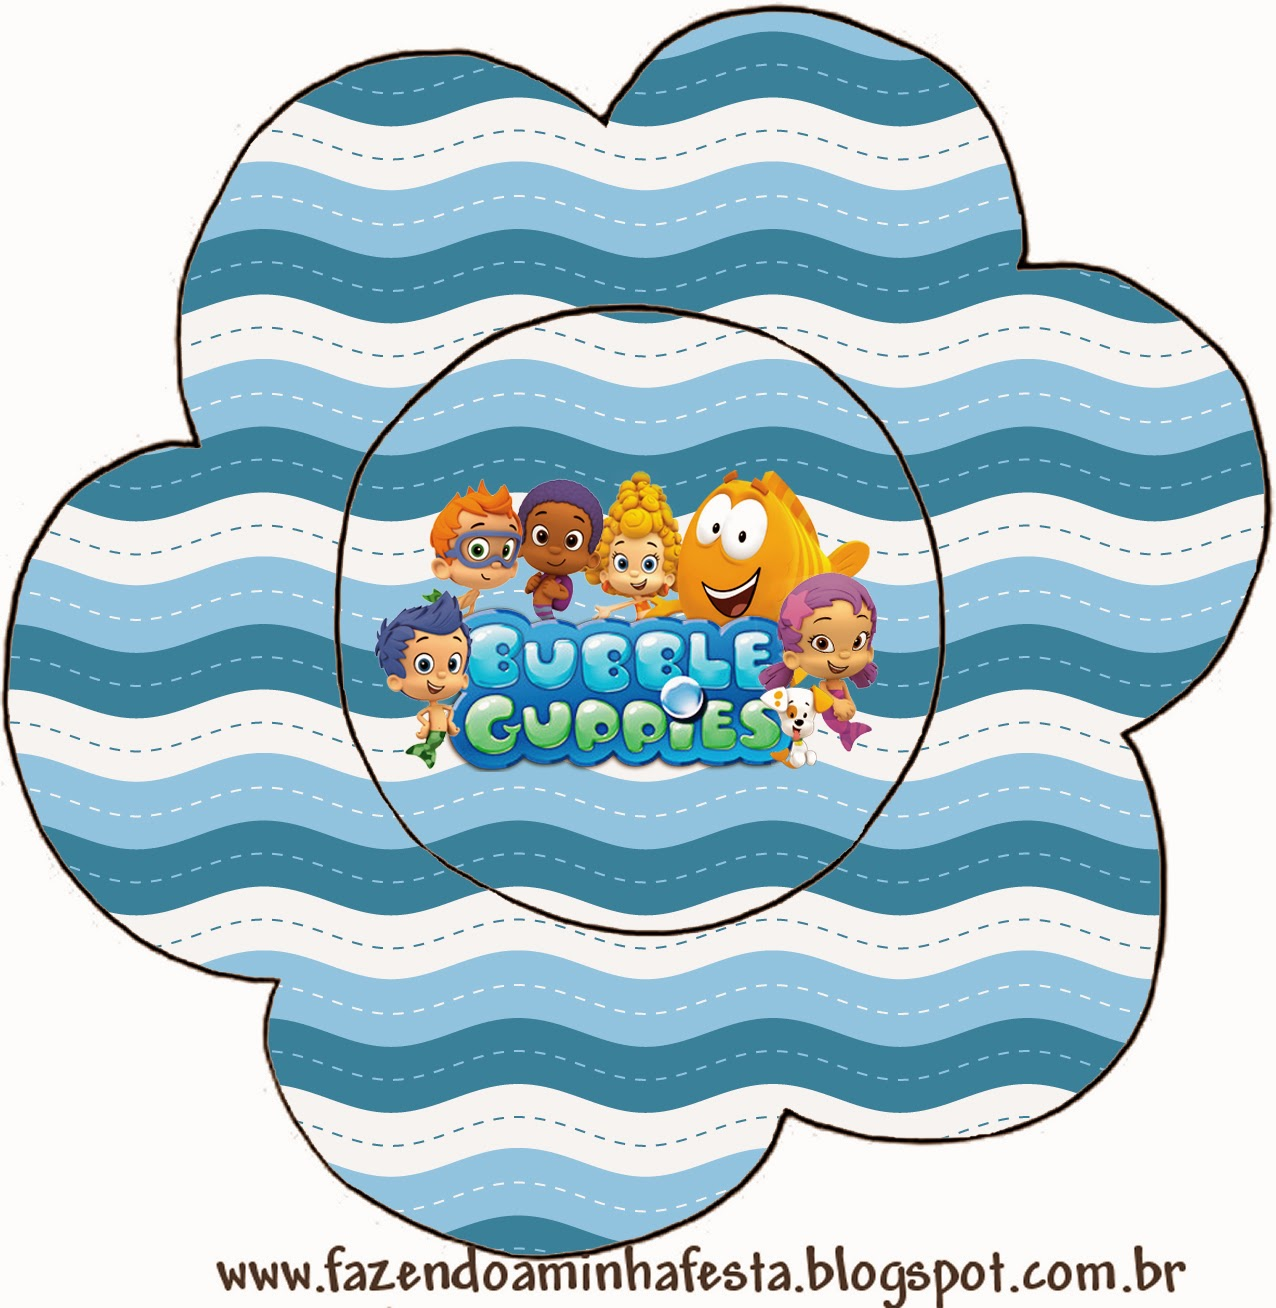 Bubble Guppies Free Printable Invitations – Free Printable Bubble Guppies Birthday Invitations